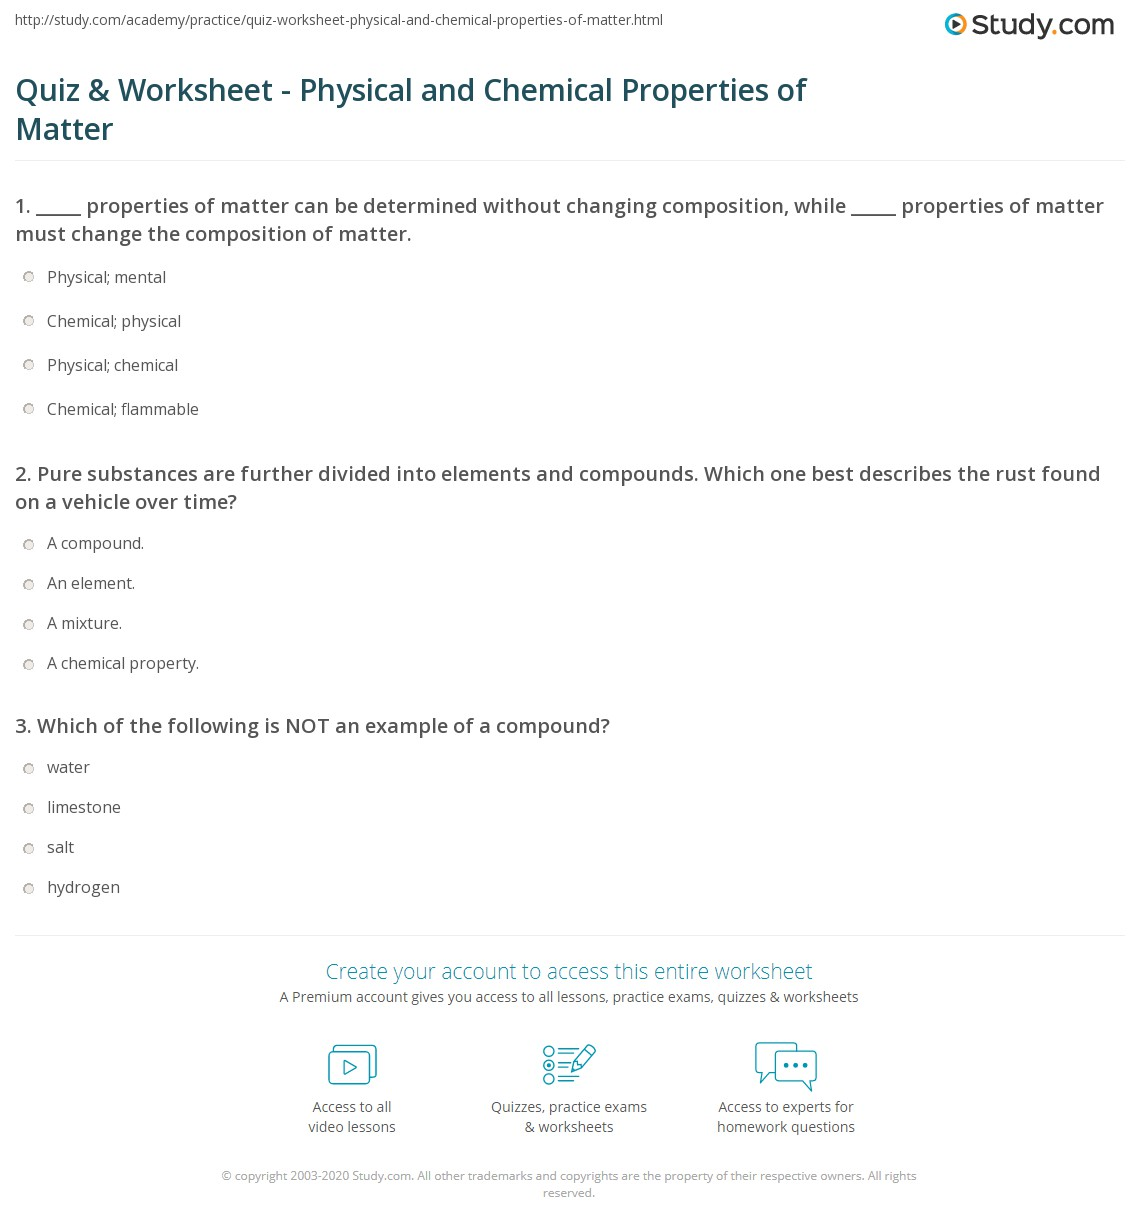 Worksheet Physical And Chemical Properties Worksheet quiz worksheet physical and chemical properties of matter print worksheet